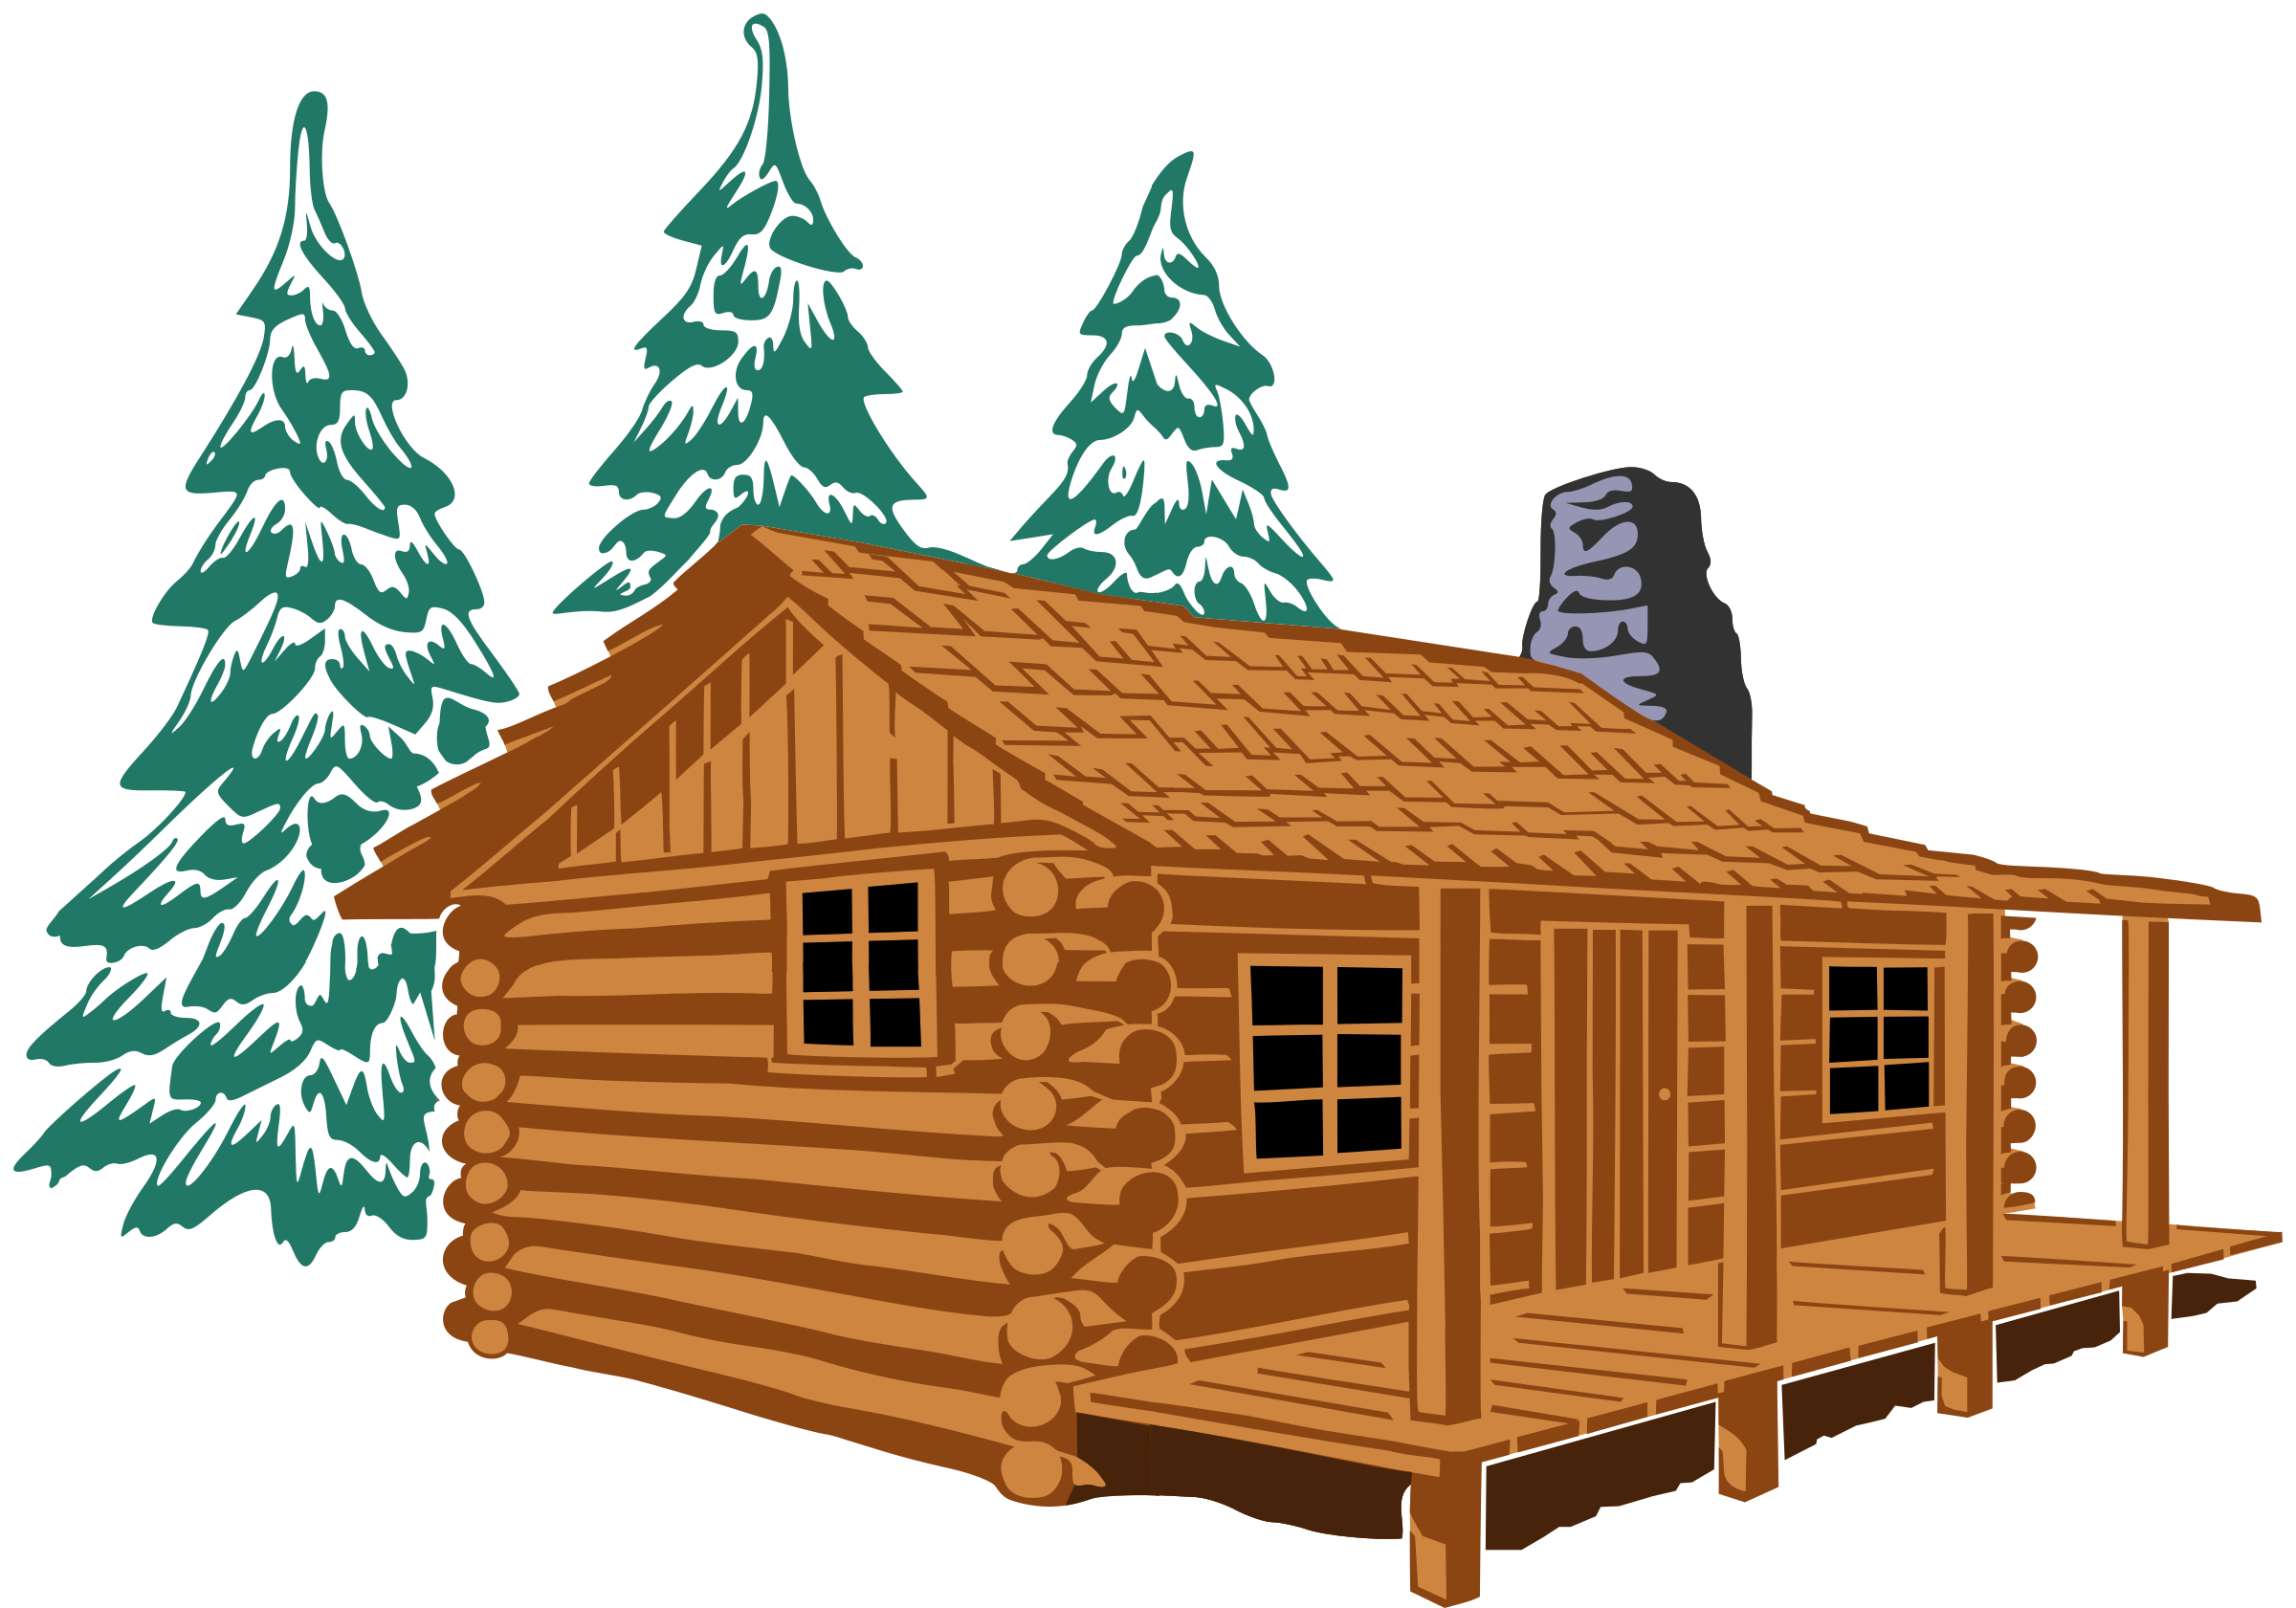 Hebrews remix icons png. Winter clipart log cabin